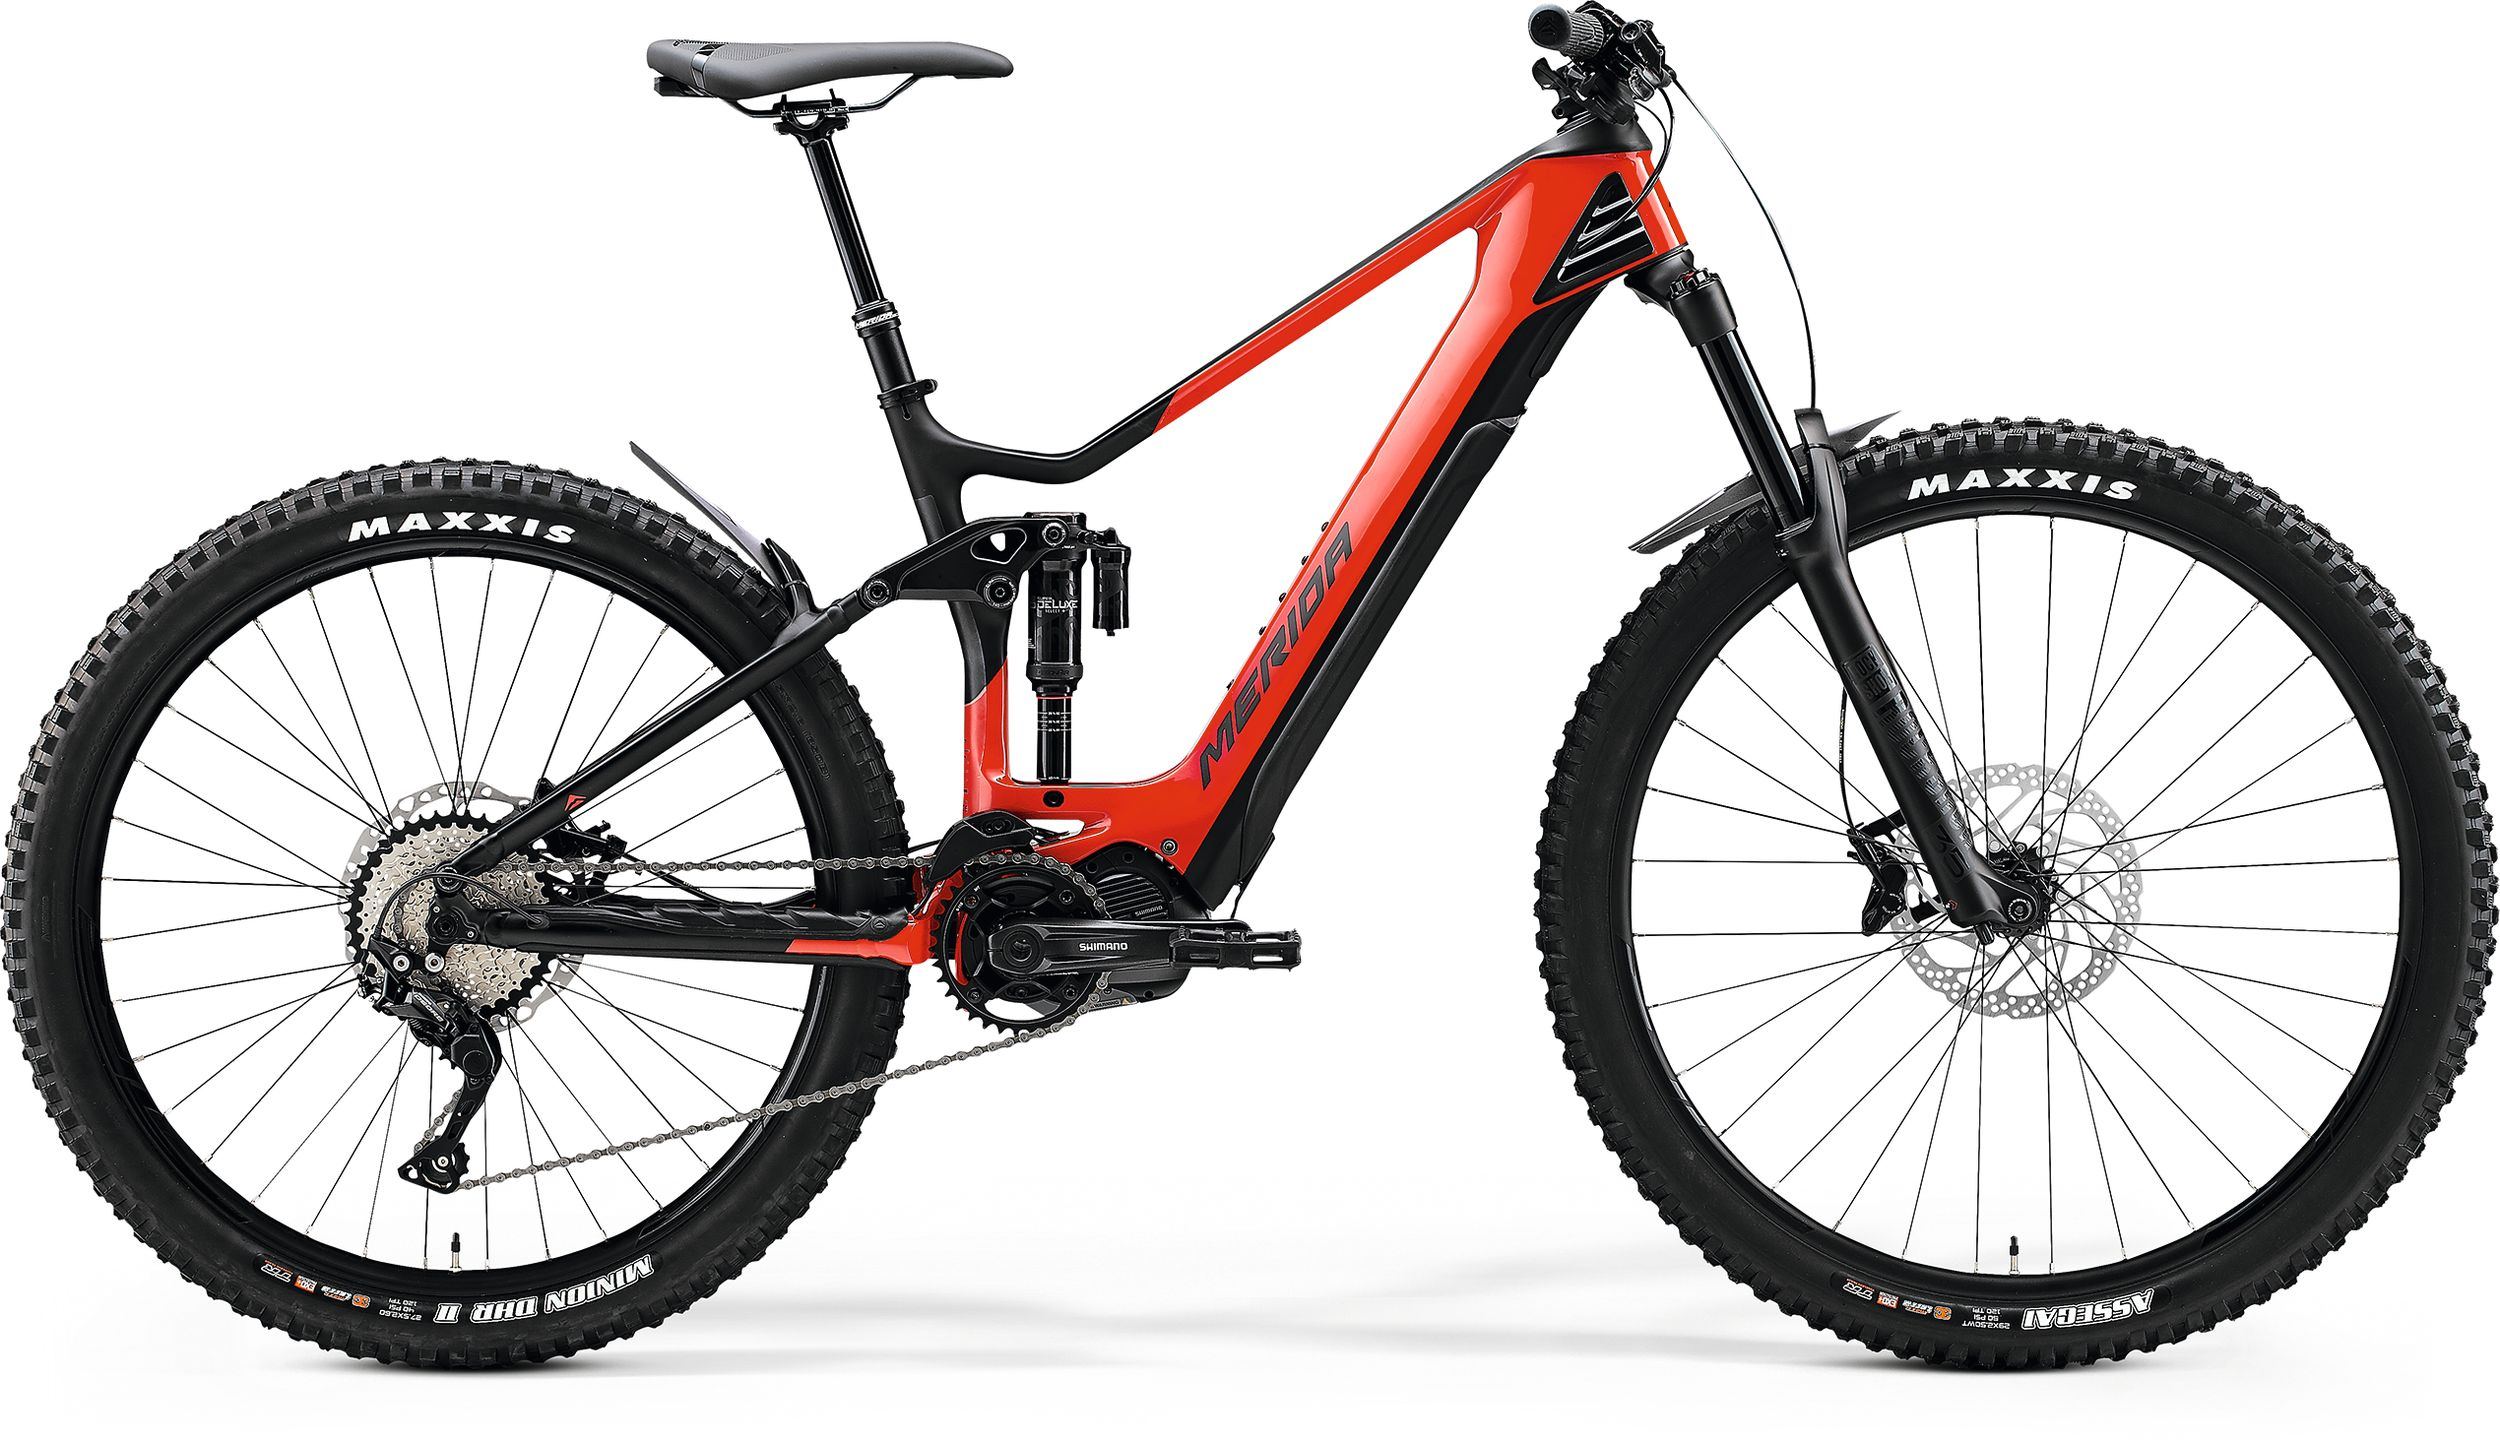 2020 MERIDA E ONE-SIXTY 5000 CARBON